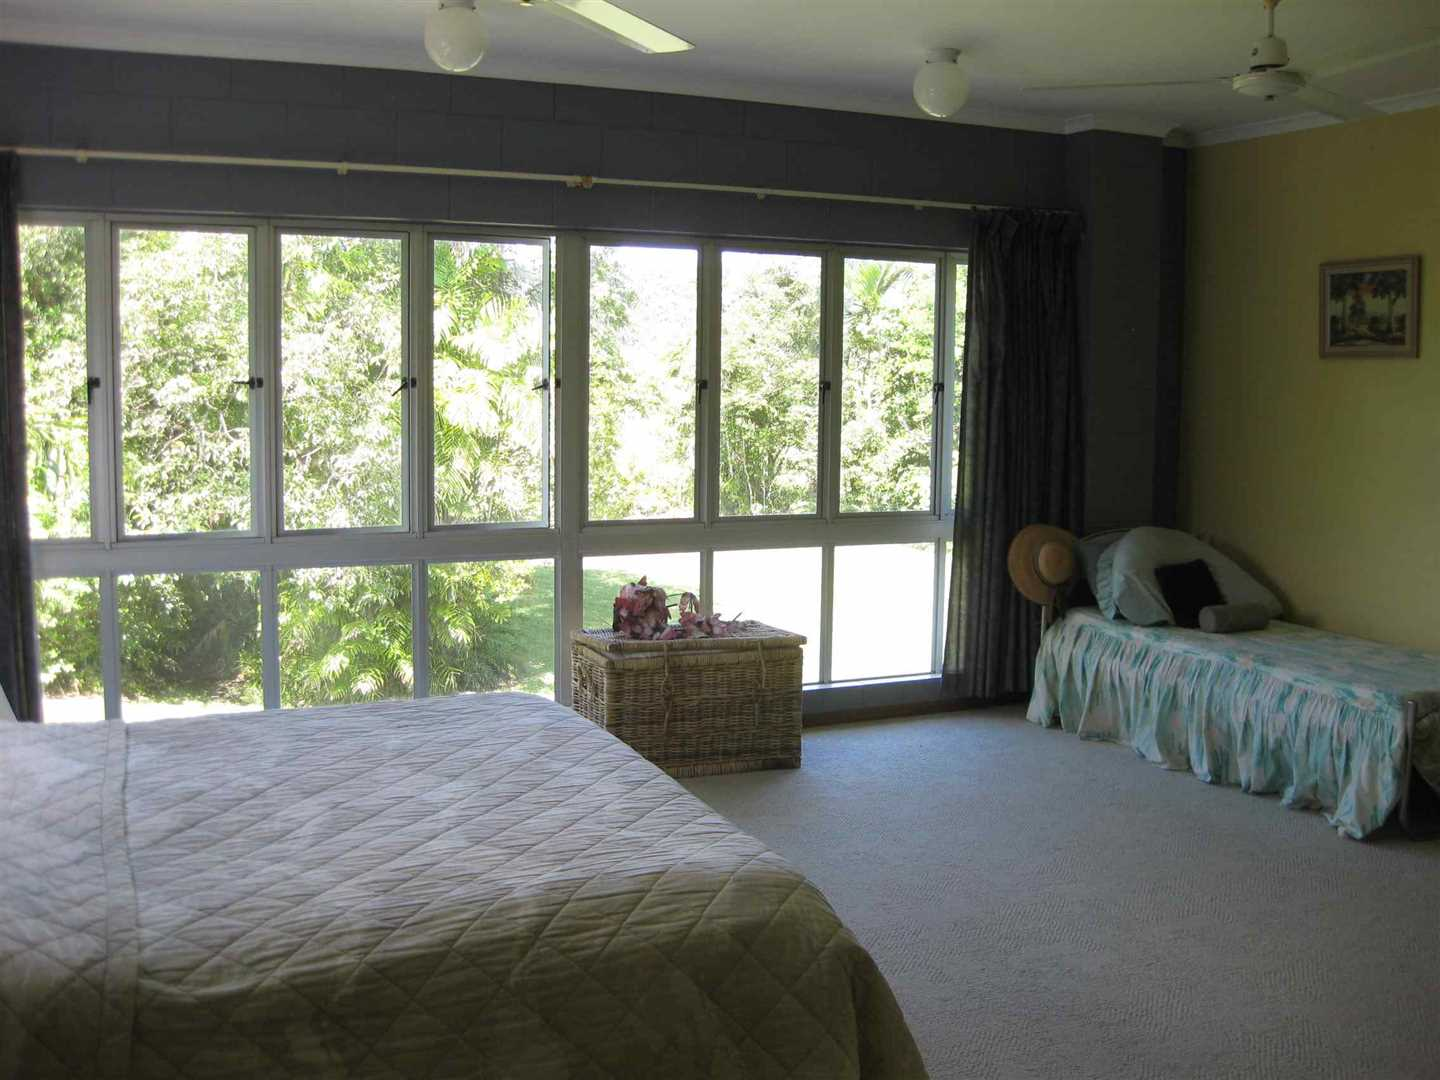 Inside view of part of home showing part of the main bedroom, photo 2